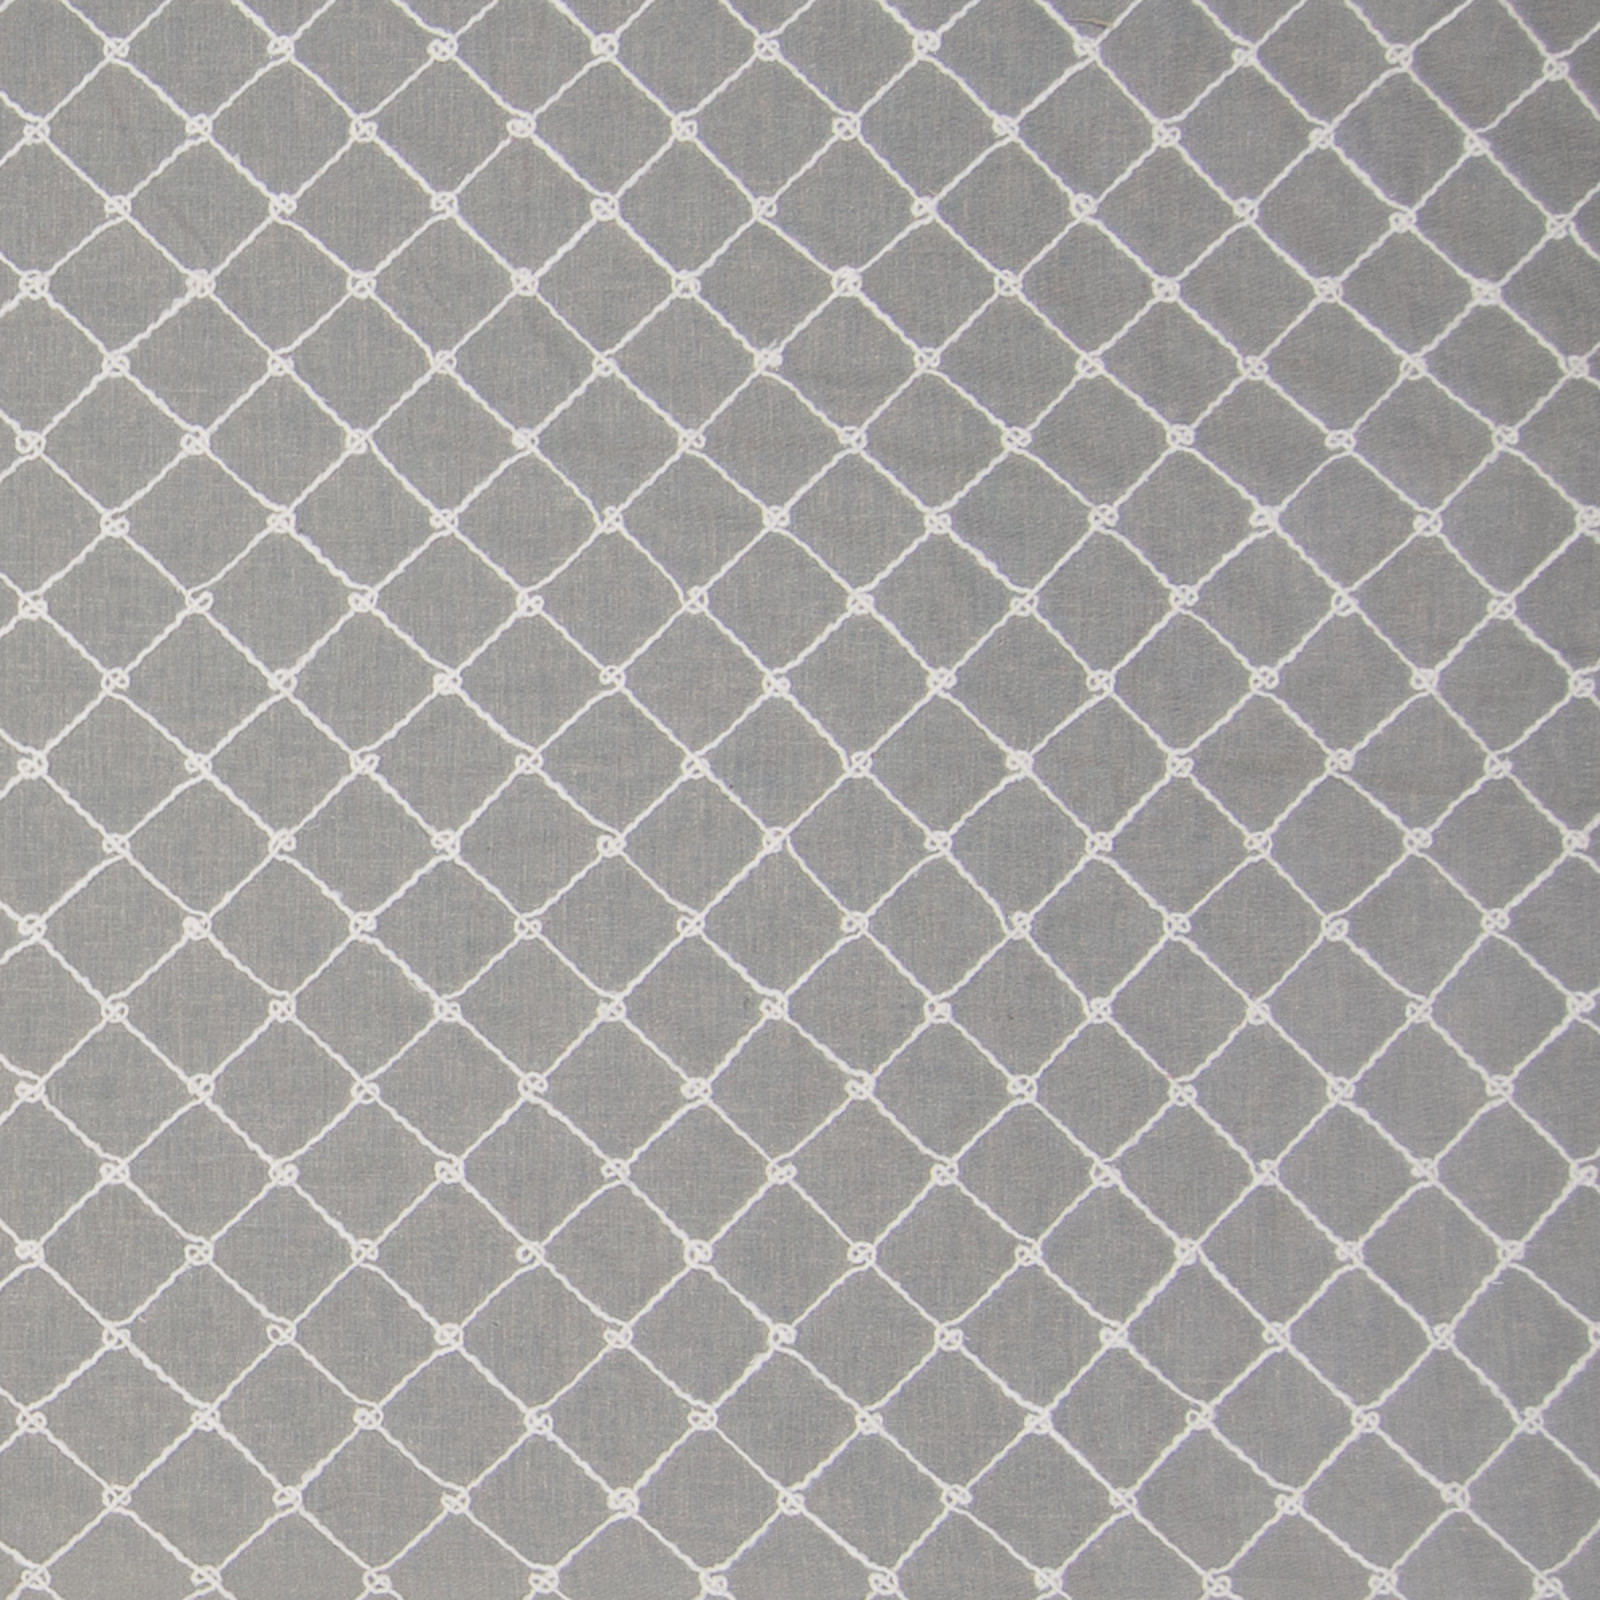 Pewter Gray Diamond Embroideries D Ry And Upholstery Fabric